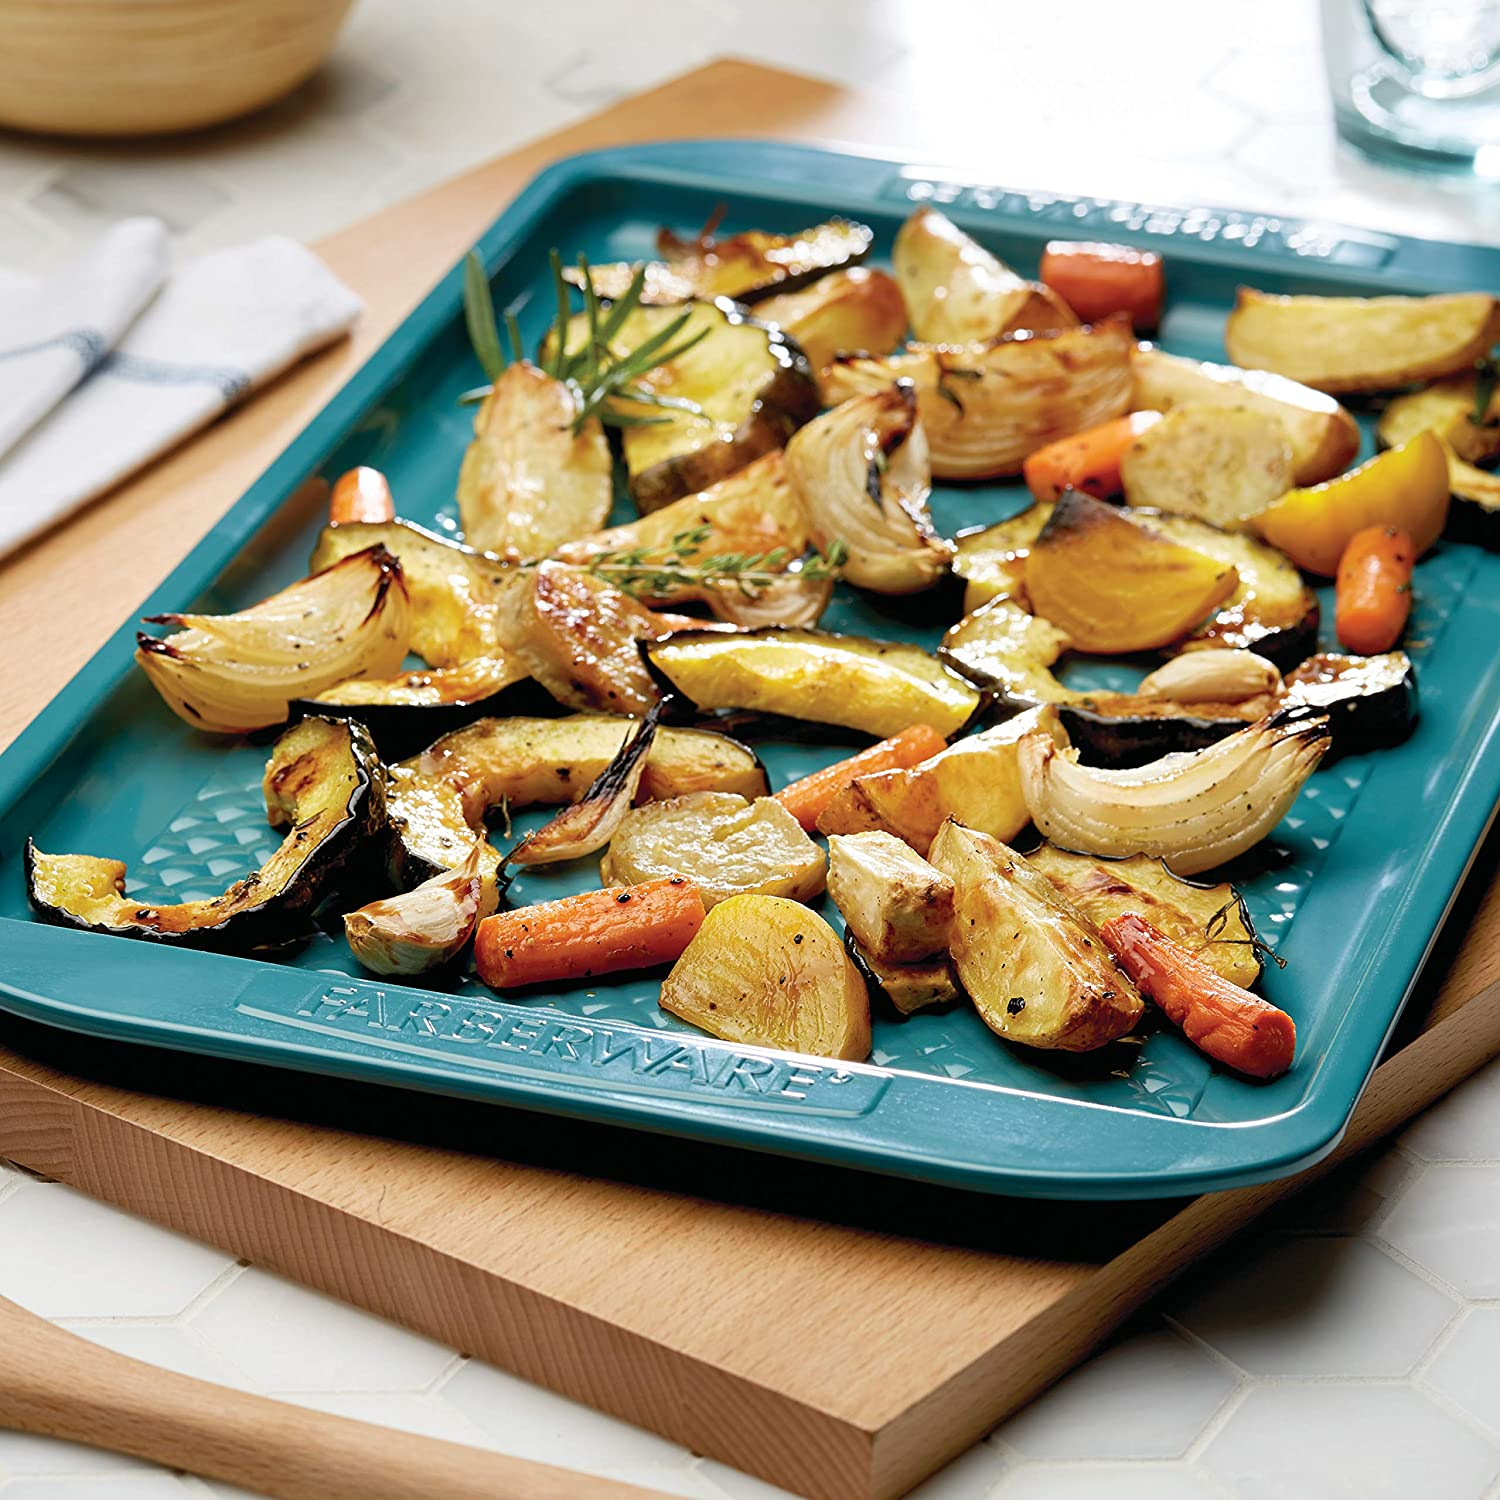 teal cooking sheet with potatoes, onions, and carrots